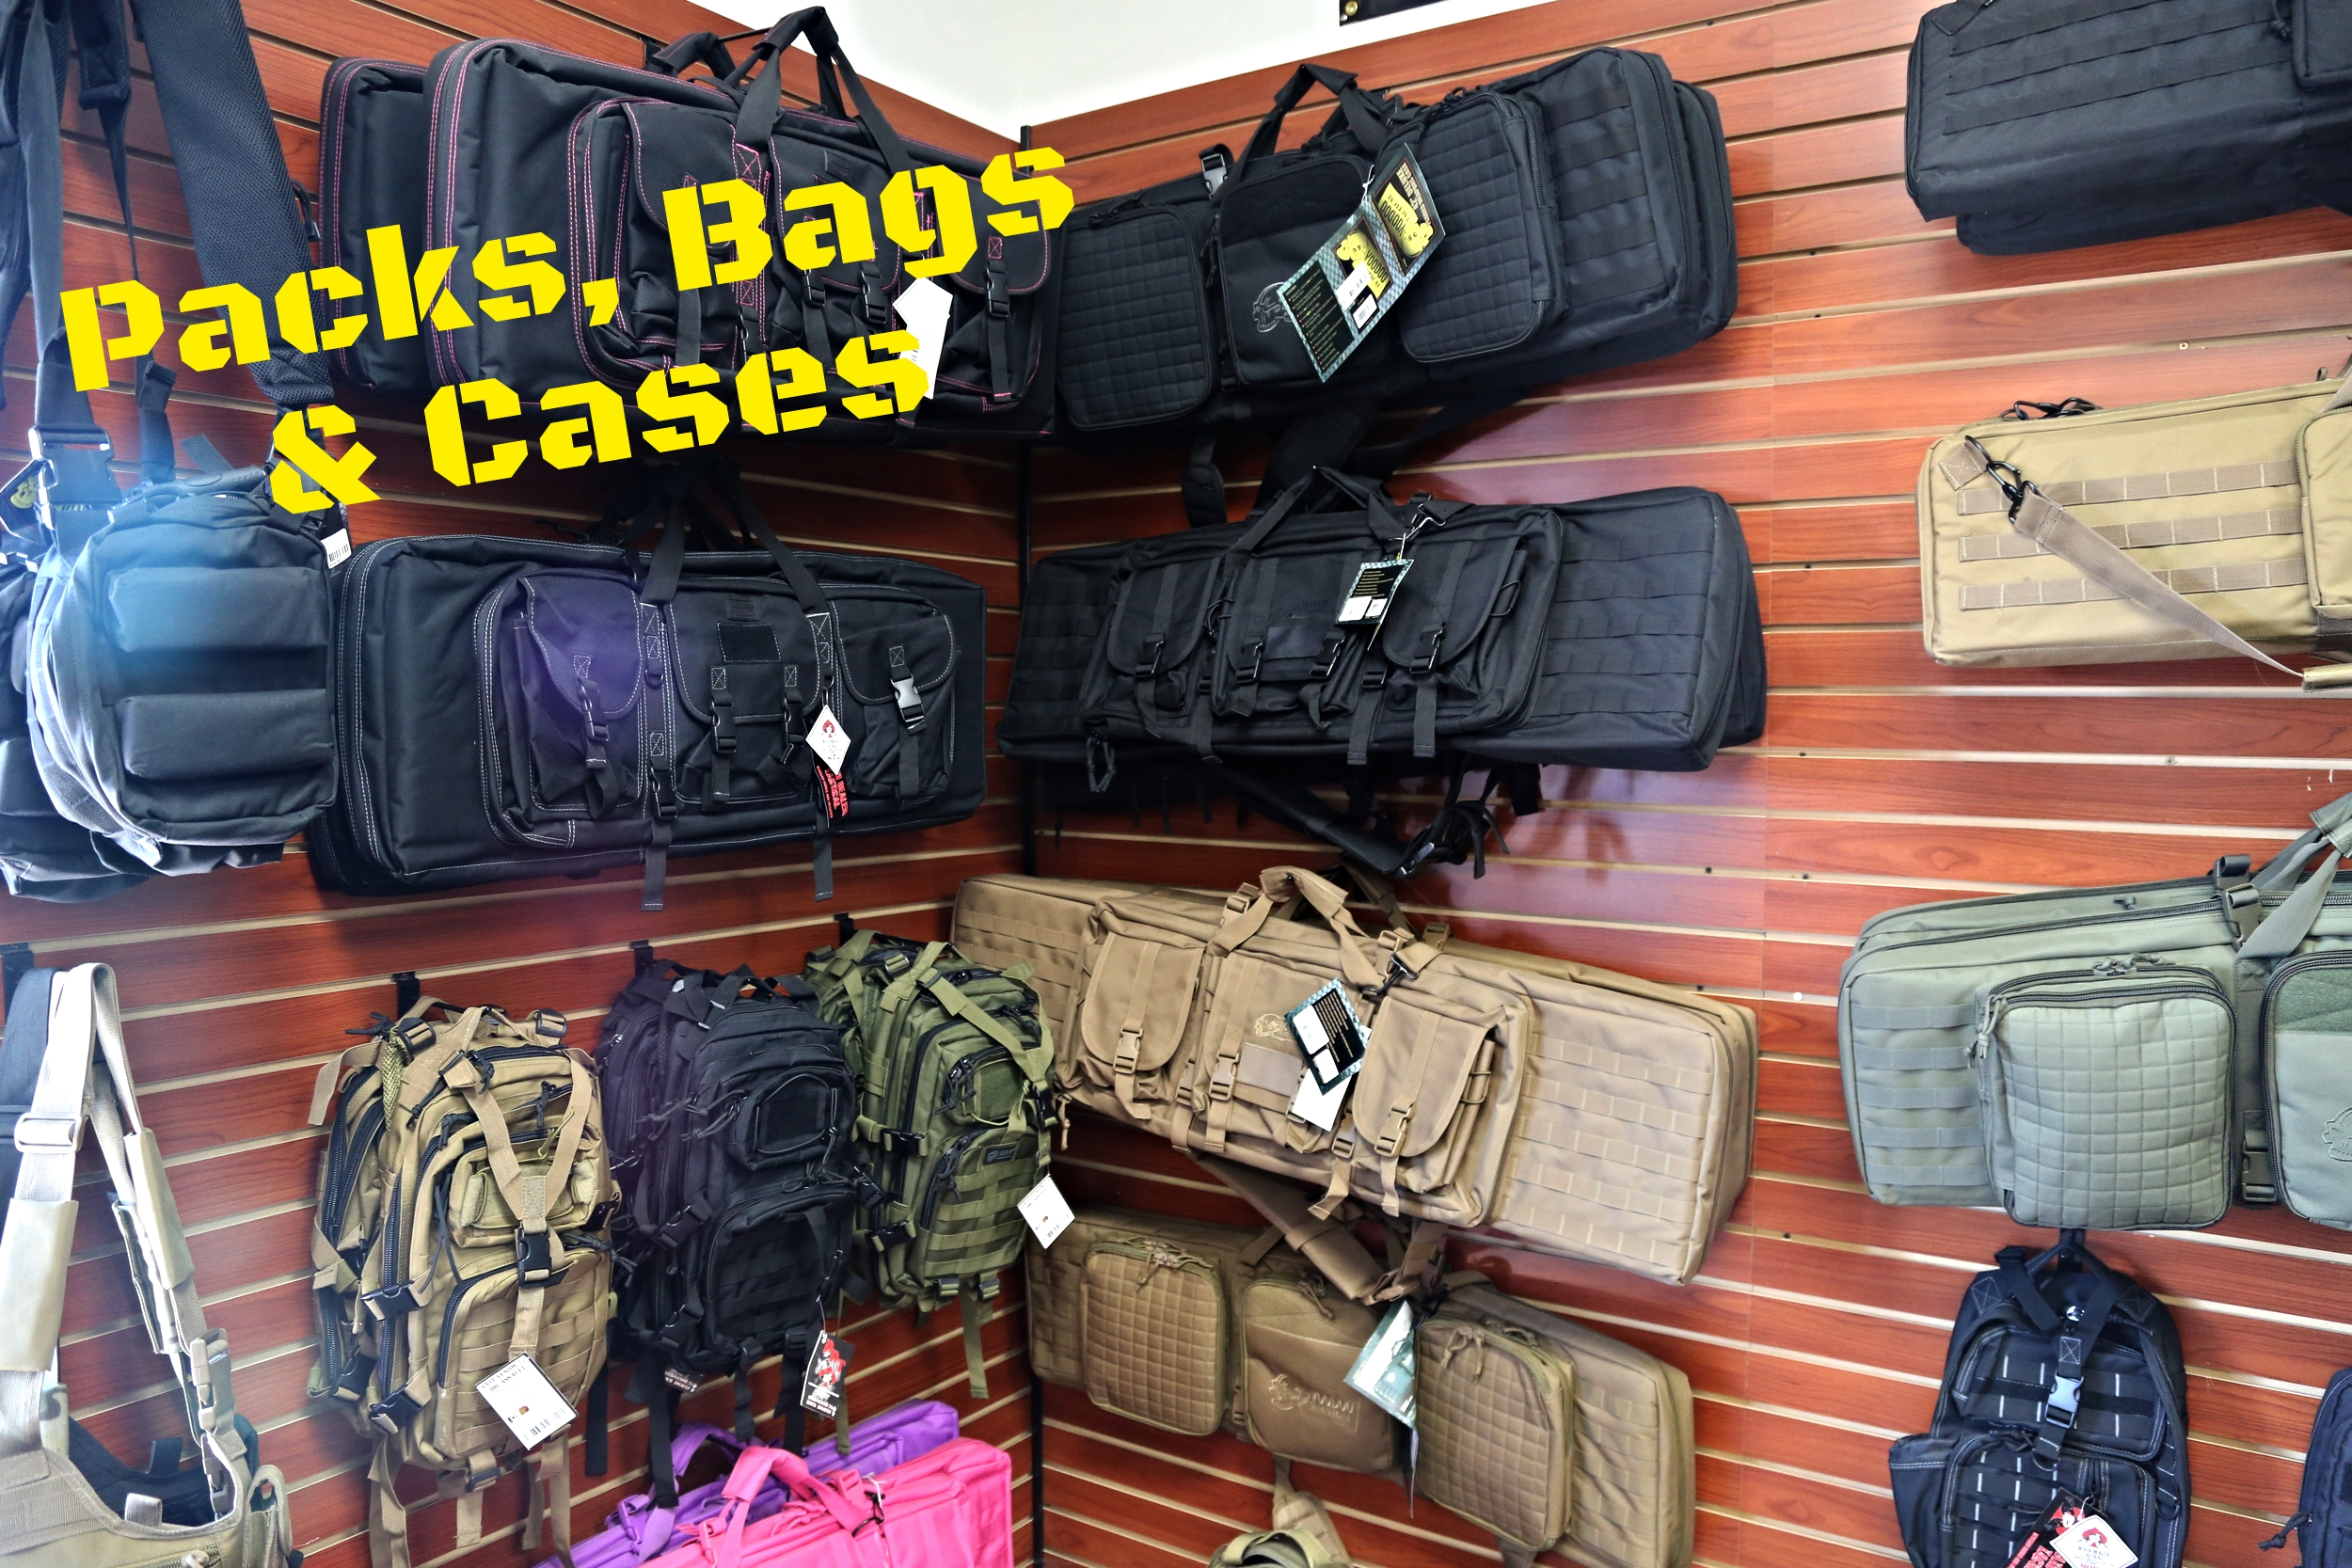 We have a great selection of firearm and survival packs, bags and cases.  We carry such stellar brands as: -5.11 - VooDoo Tactical -Death Dealer Tactical -GPS Tactical -Pelican -Plano    and many more!